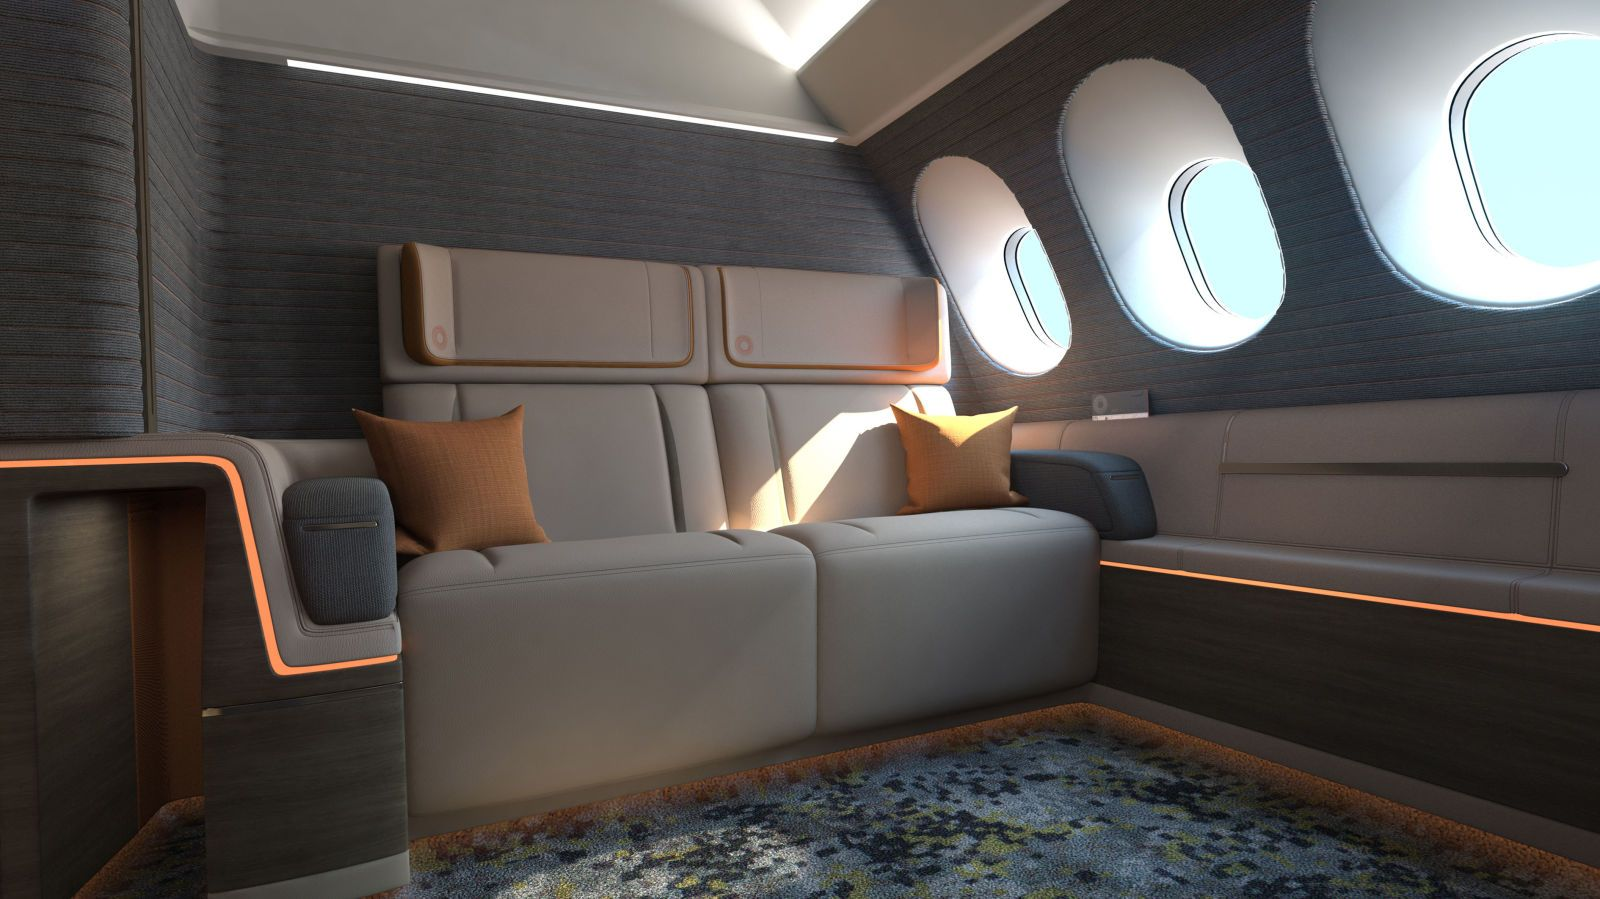 King Size Beds Are Coming To An Airplane Near You Cabin Design